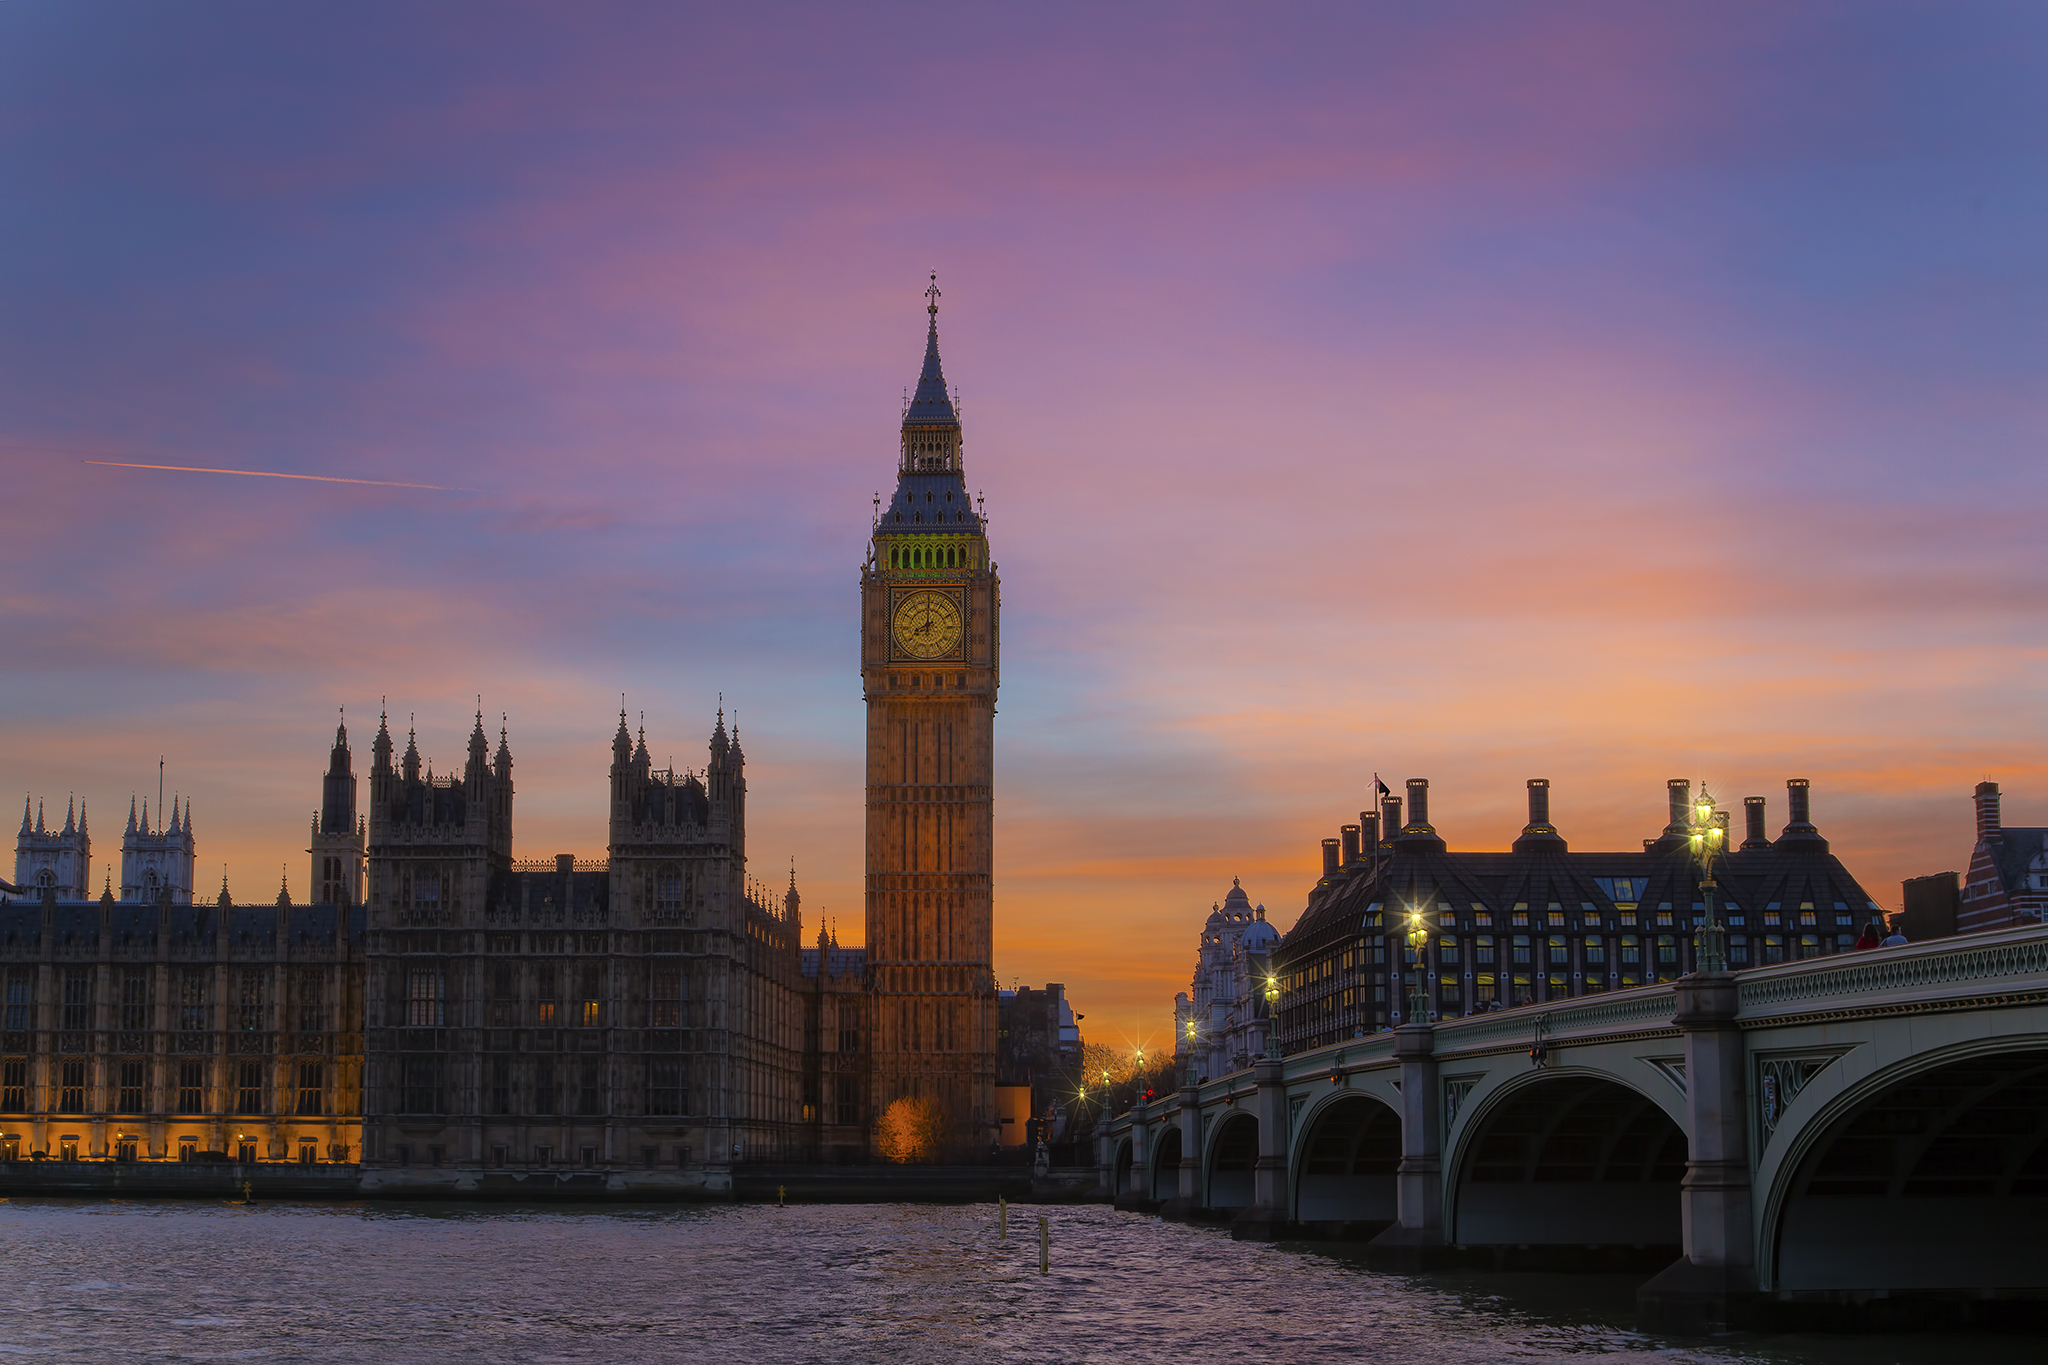 Sunset at Eight over The Houses of Paliament, United Kingdom